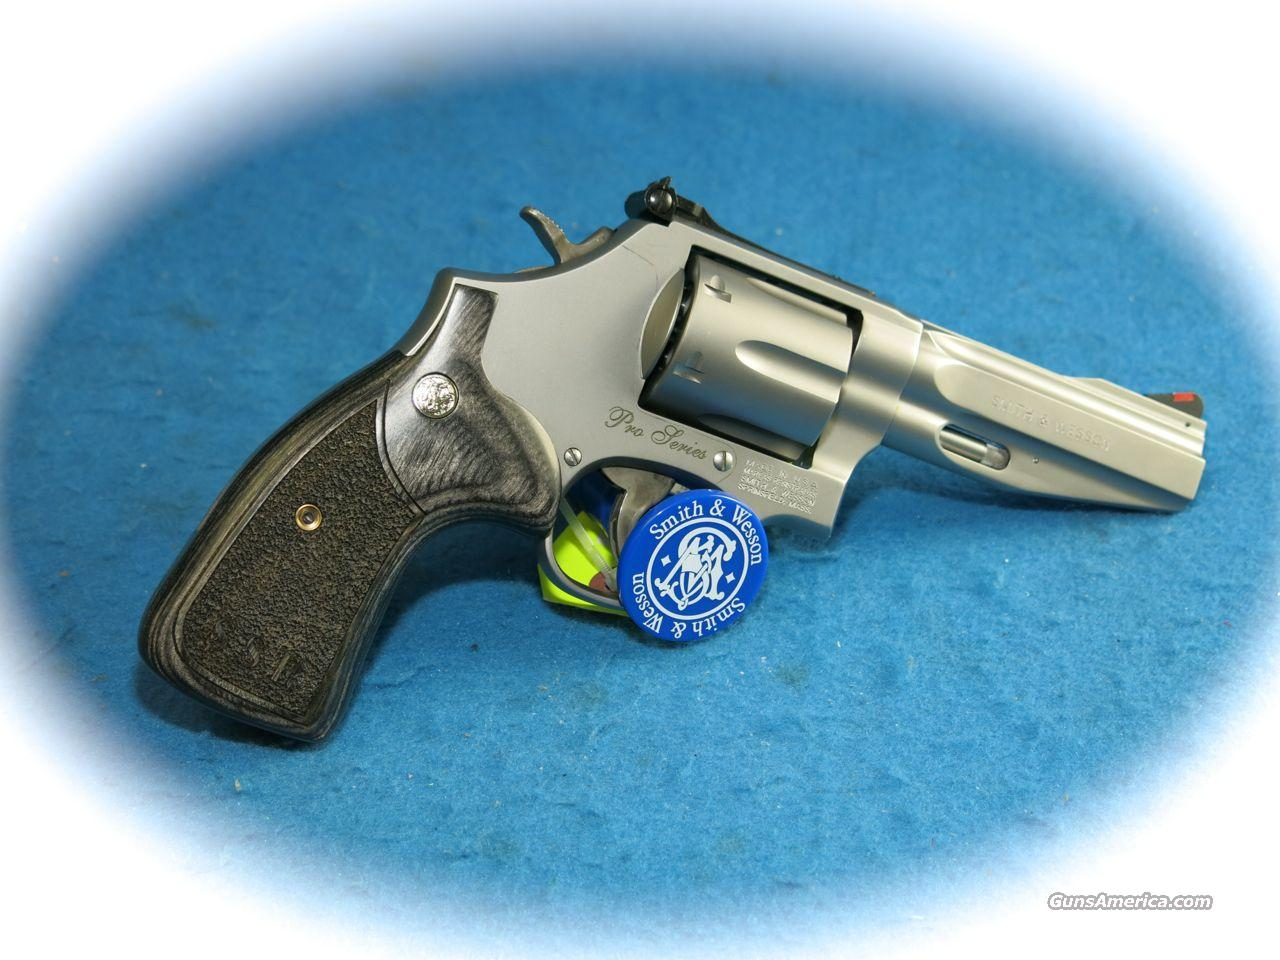 Smith & Wesson 686 SSR Pro Series .357 Mag Revolver **New**  Guns > Pistols > Smith & Wesson Revolvers > Full Frame Revolver